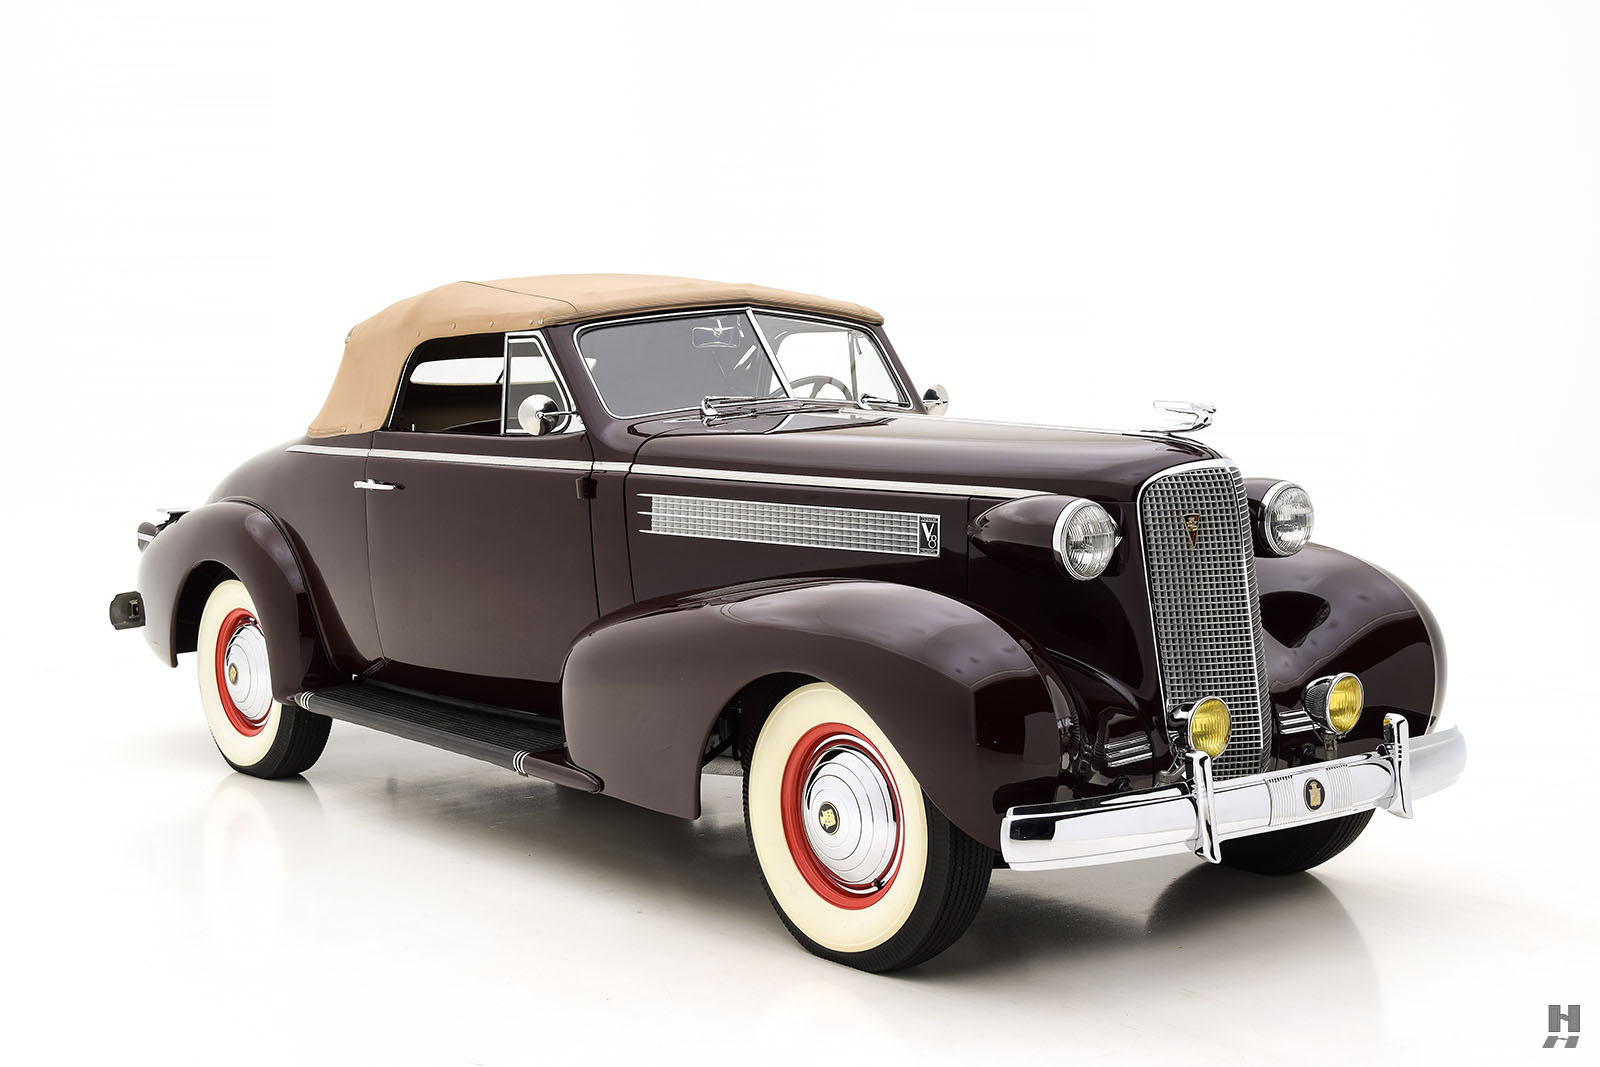 1937 Cadillac Series 60 Convertible For Sale | Buy Classic